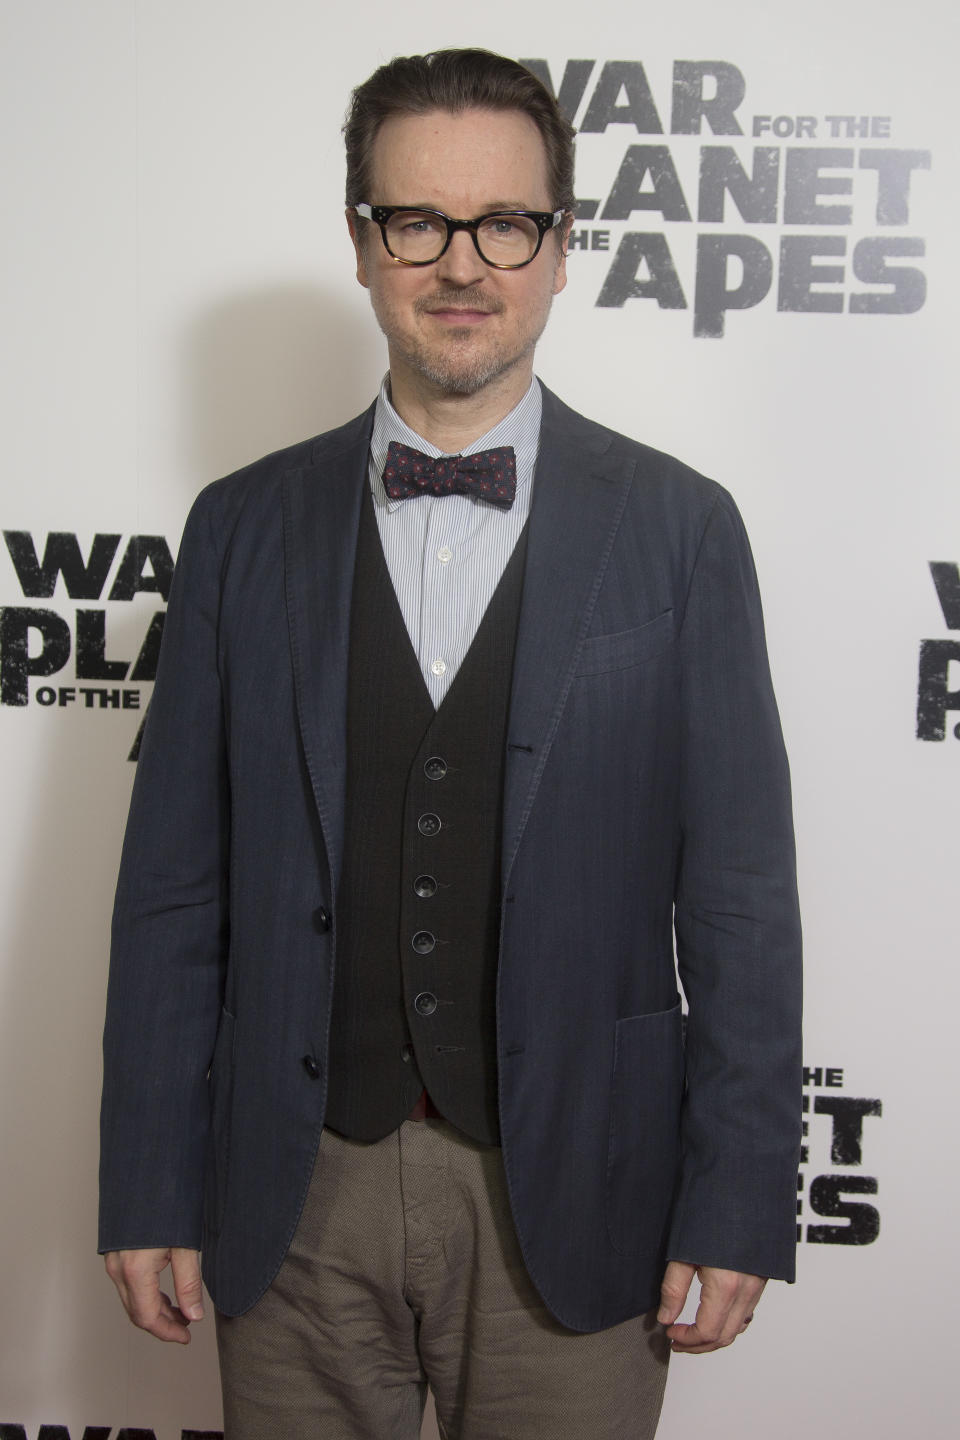 Director Matt Reeves poses for photographers upon arrival at the screening of the film 'War for the Planet of the Apes' in London, Monday, June 19, 2017. (Photo by Joel Ryan/Invision/AP)